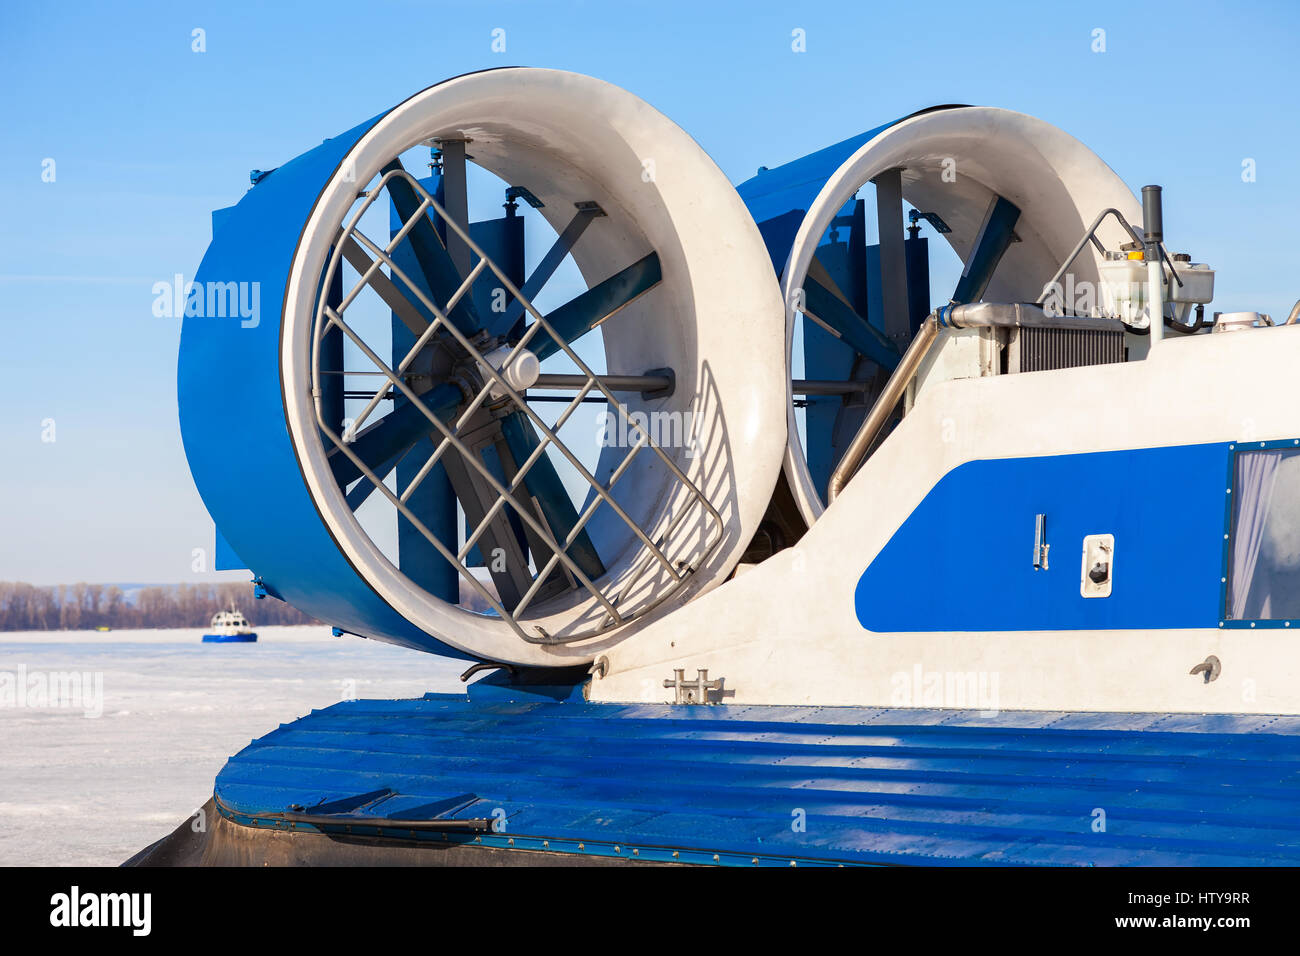 Turbo-prop engine of a naval hovercraft on the ice of the frozen river - Stock Image